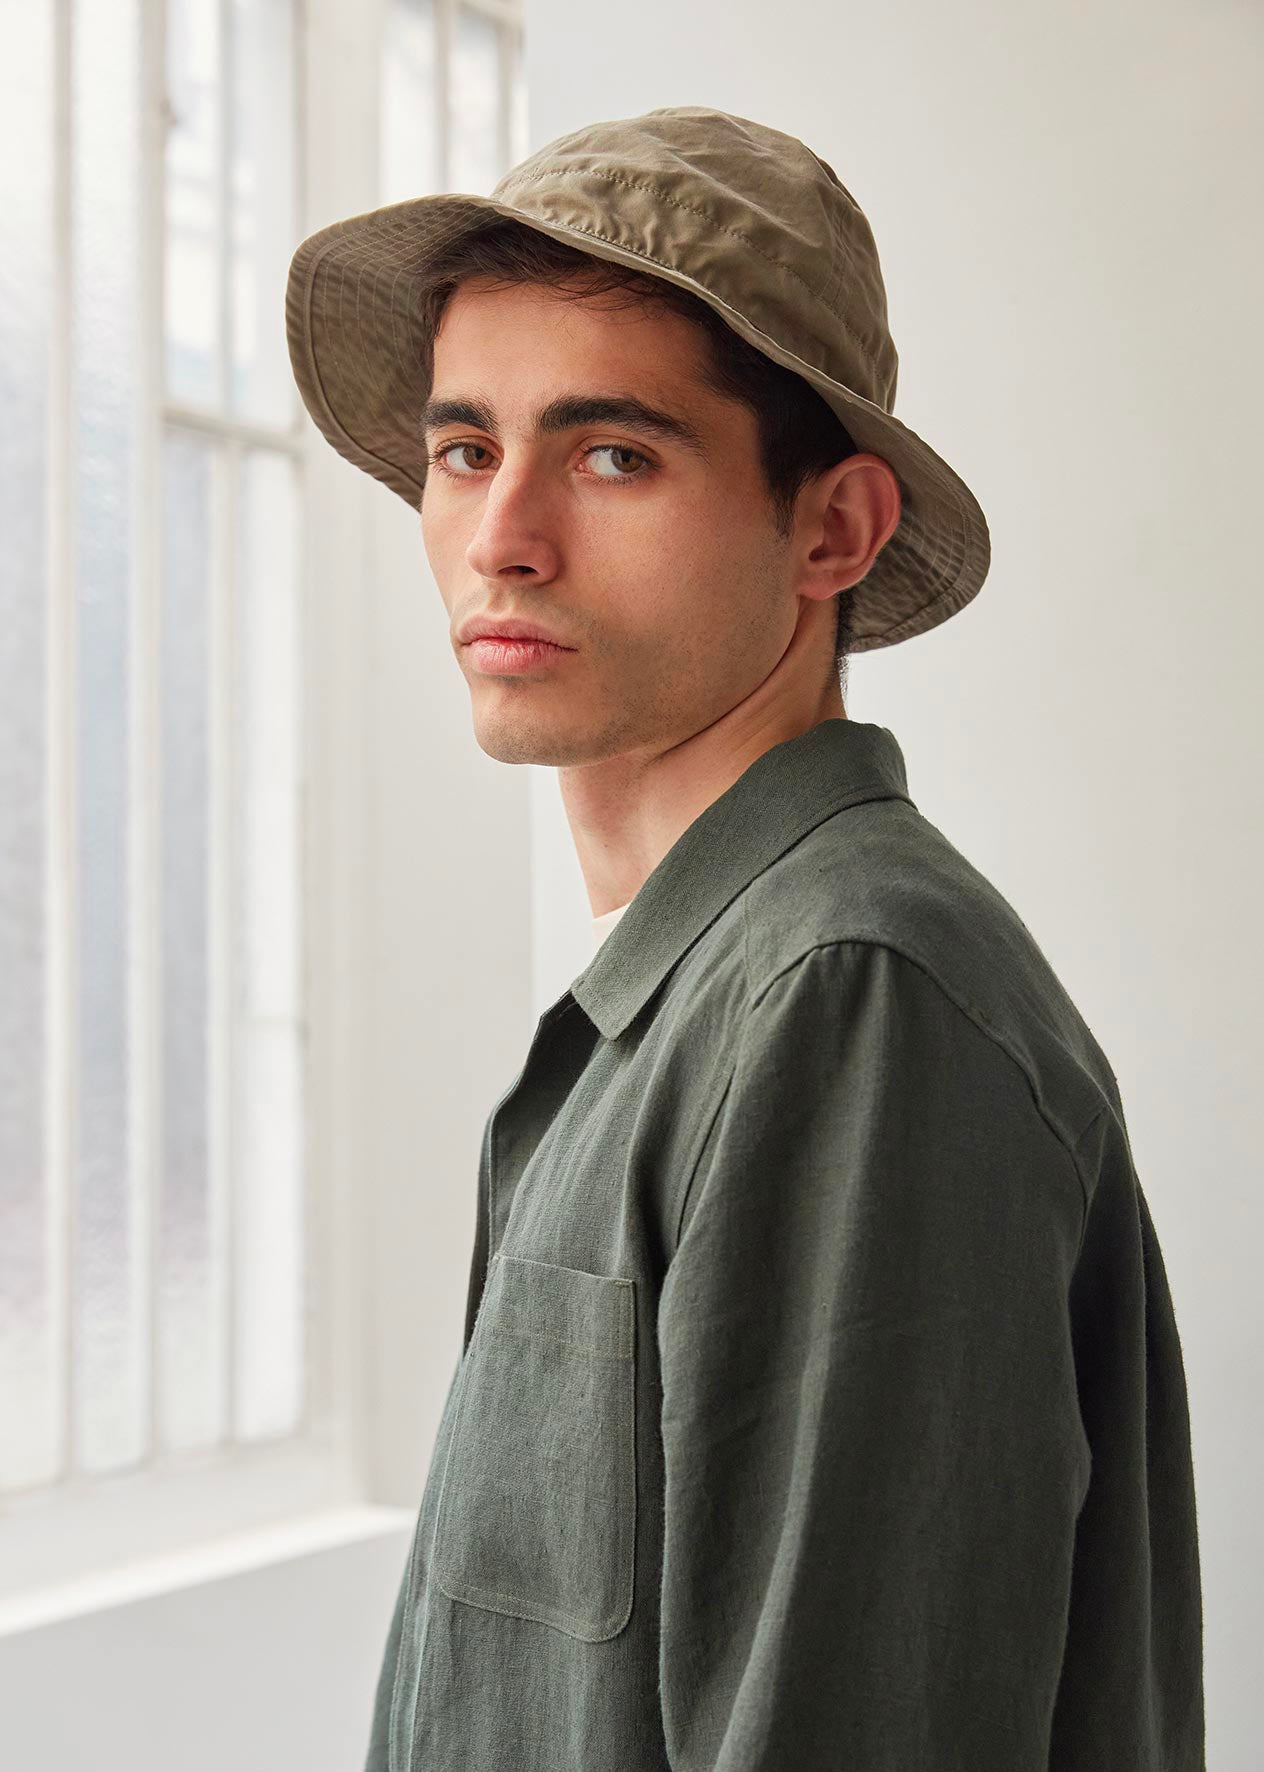 Bob hat - Organic cotton ventile® - Earth - De Bonne Facture